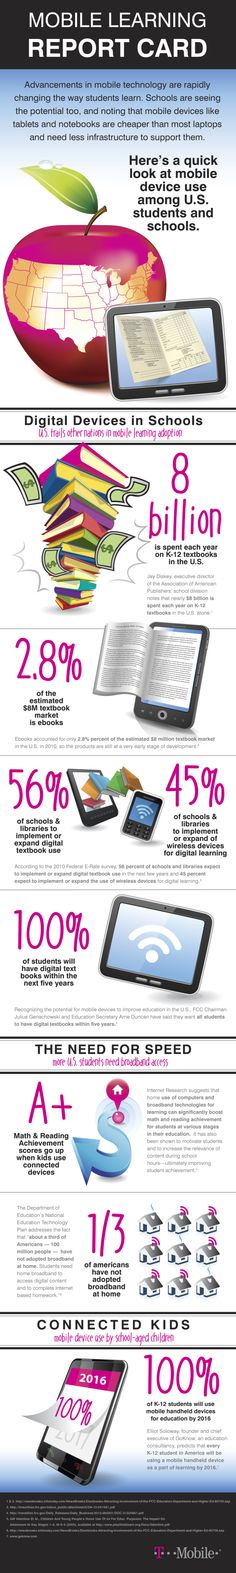 Mobile learning report card